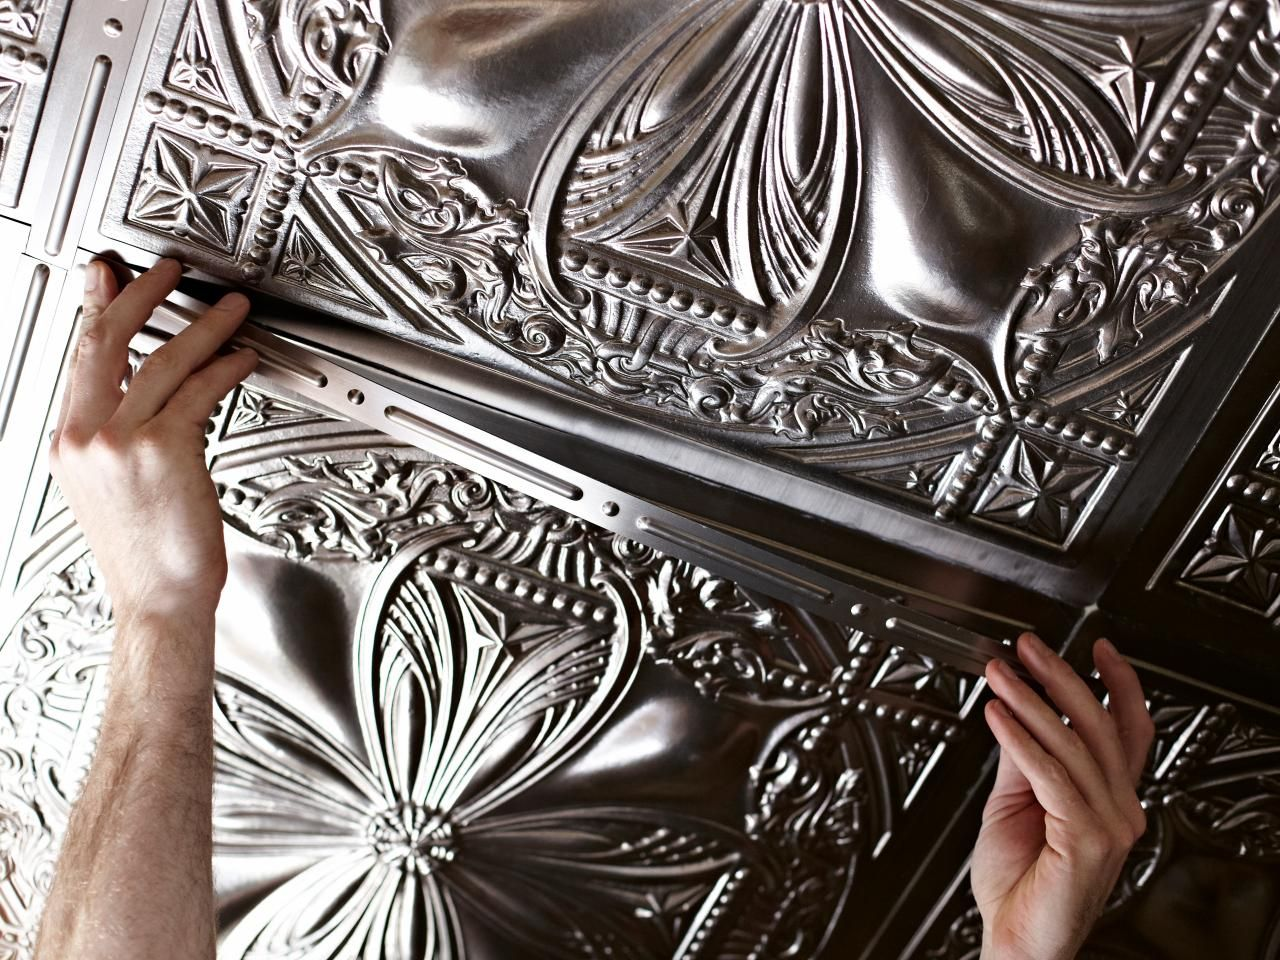 How to install tin ceiling tile tin ceilings ceiling tiles and how to install tin ceiling tile dailygadgetfo Image collections